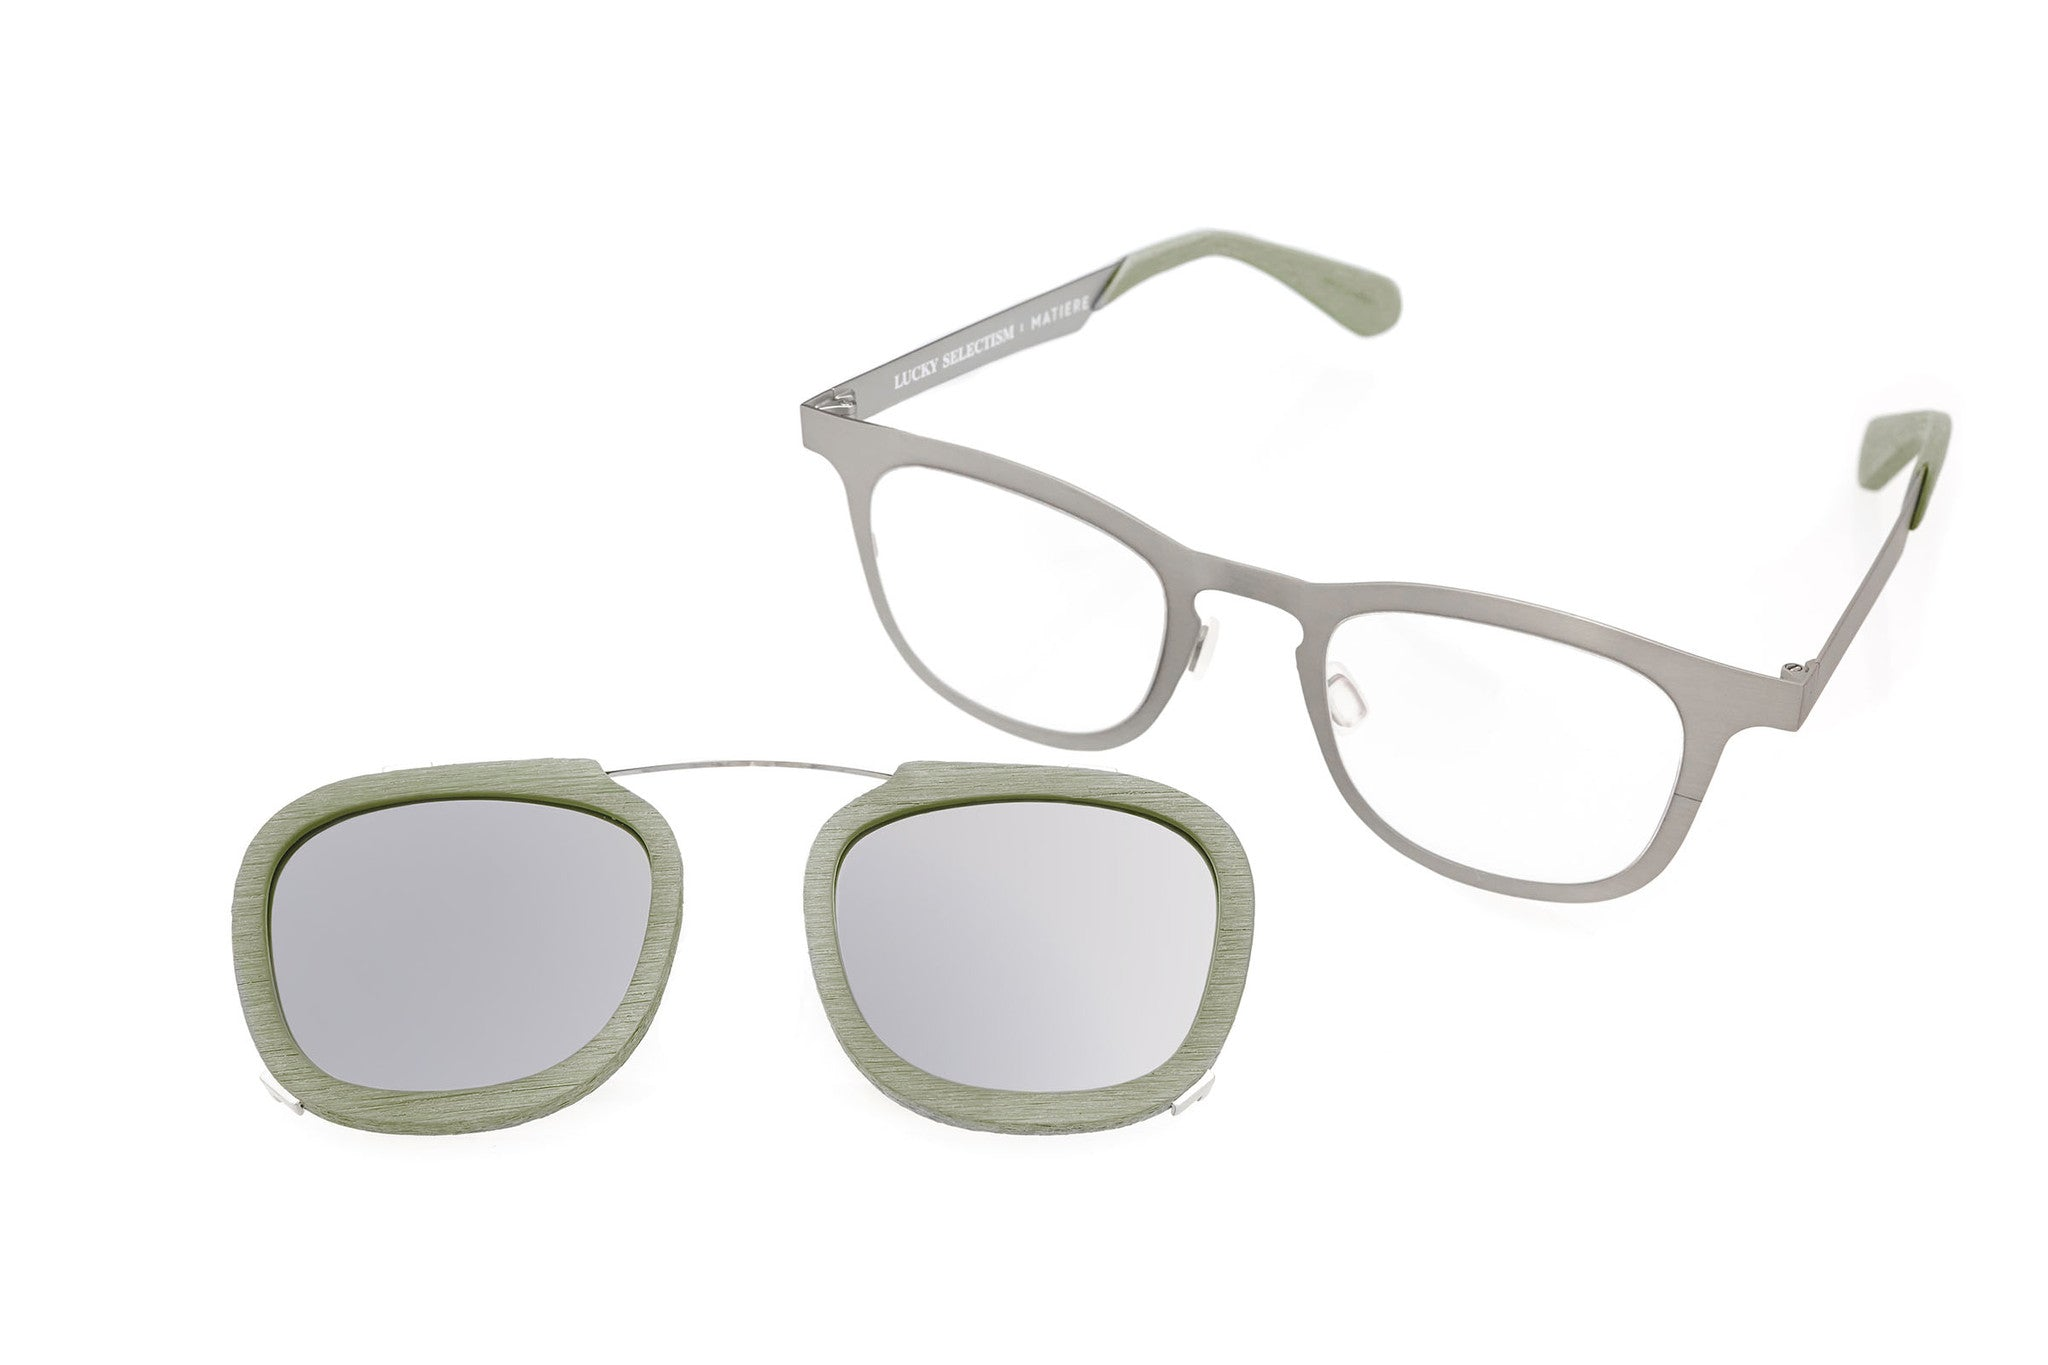 FRANCO - GLASSES - LILY PAD GREEN